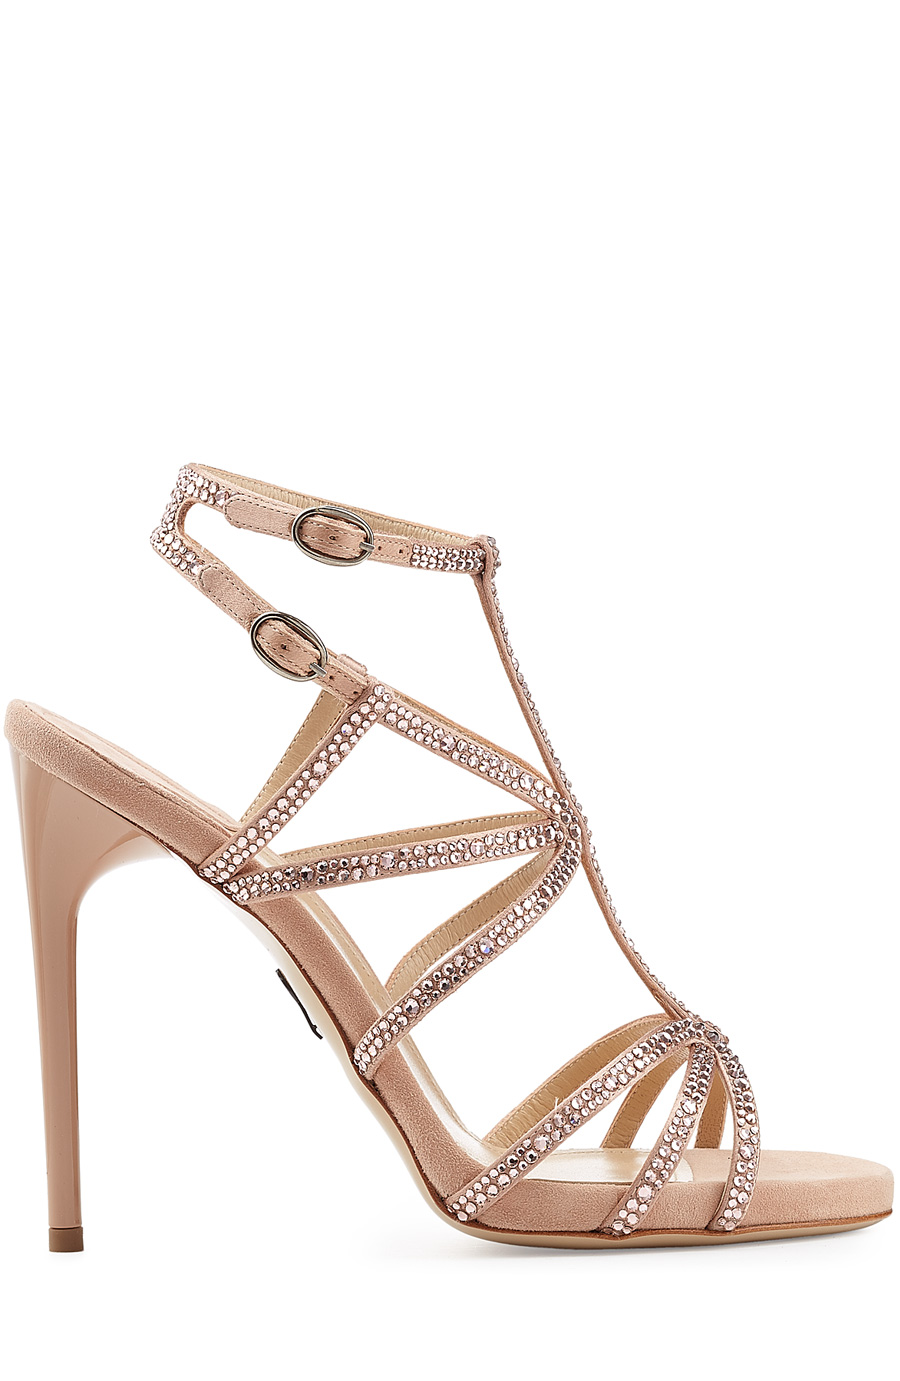 Paul Andrew Embellished Suede Sandals In Pink